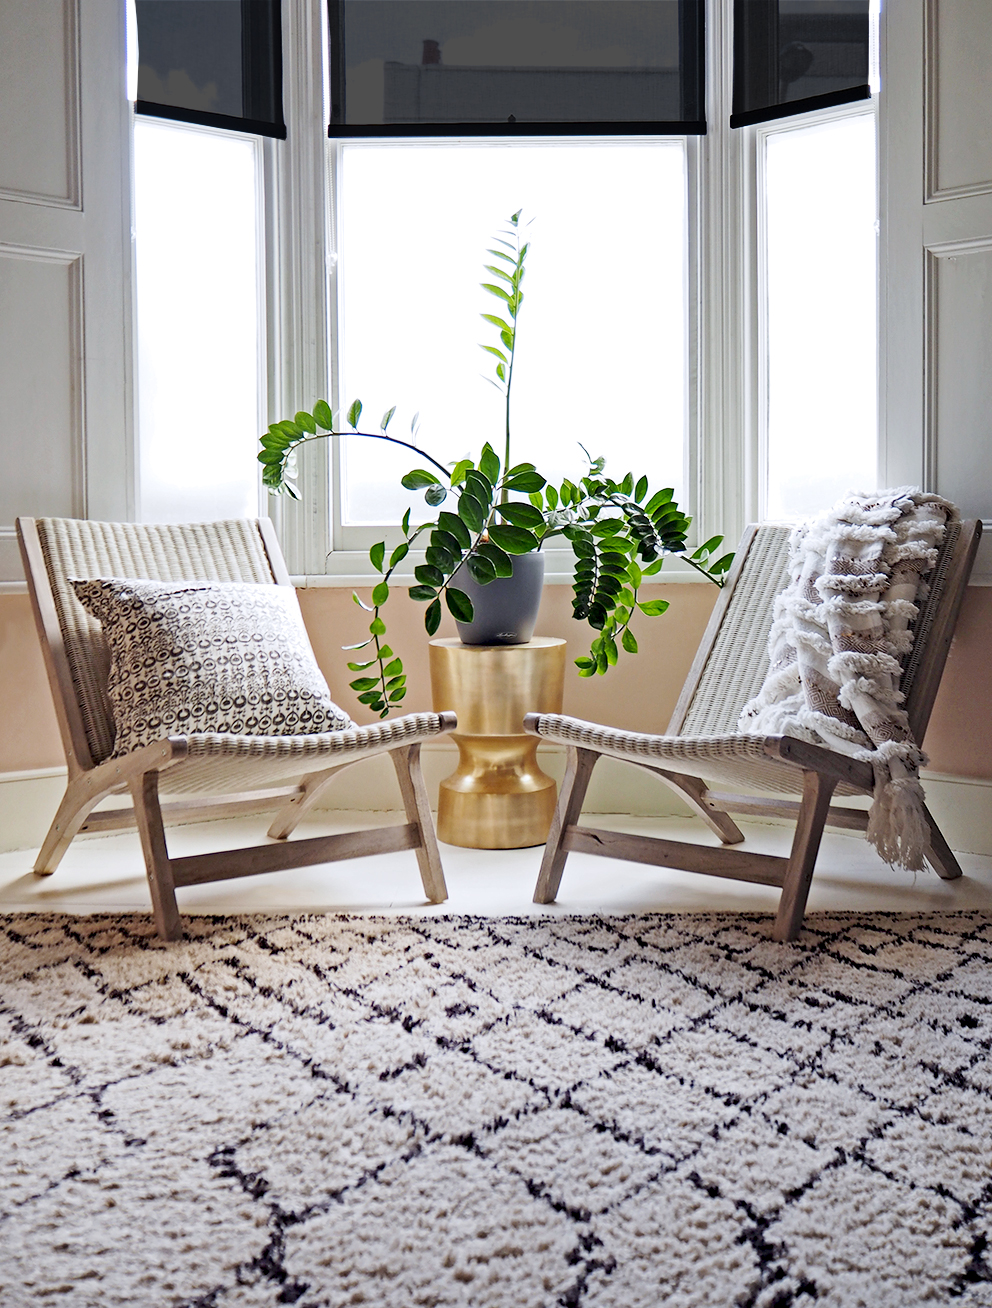 Outdoor Furniture Indoors - French For Pineapple Blog - wide shot of pair of wicker and teak chairs in bay window with zz plant on gold side table and moroccan throw and rug